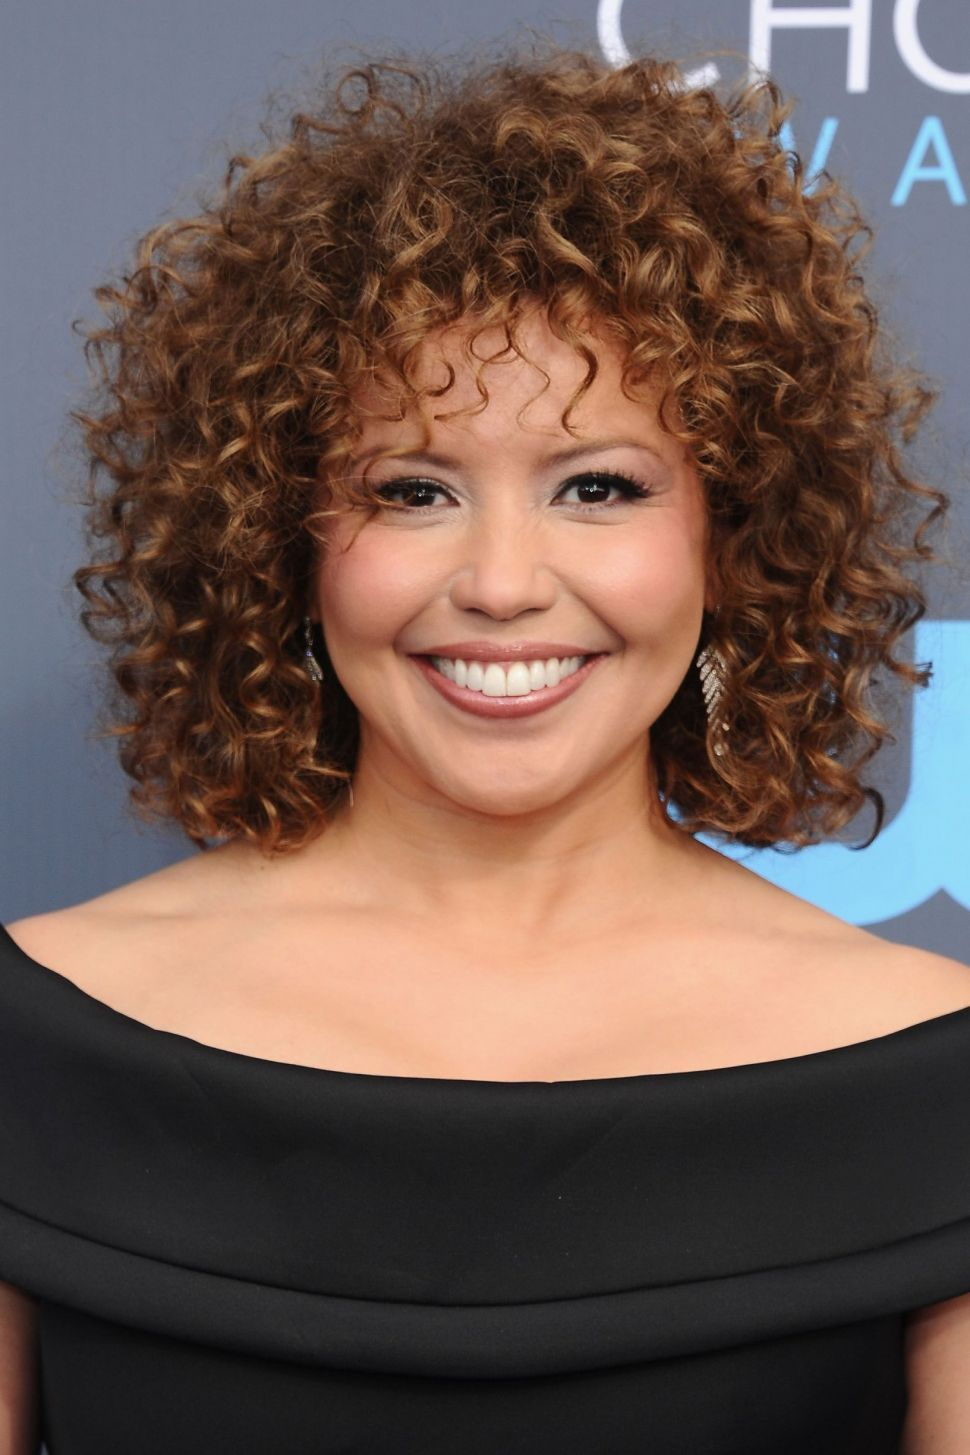 10 Trendy Ideas For Short Curly Hair hairstyles 20 celebrity short curly hair ideas haircuts and with 2020